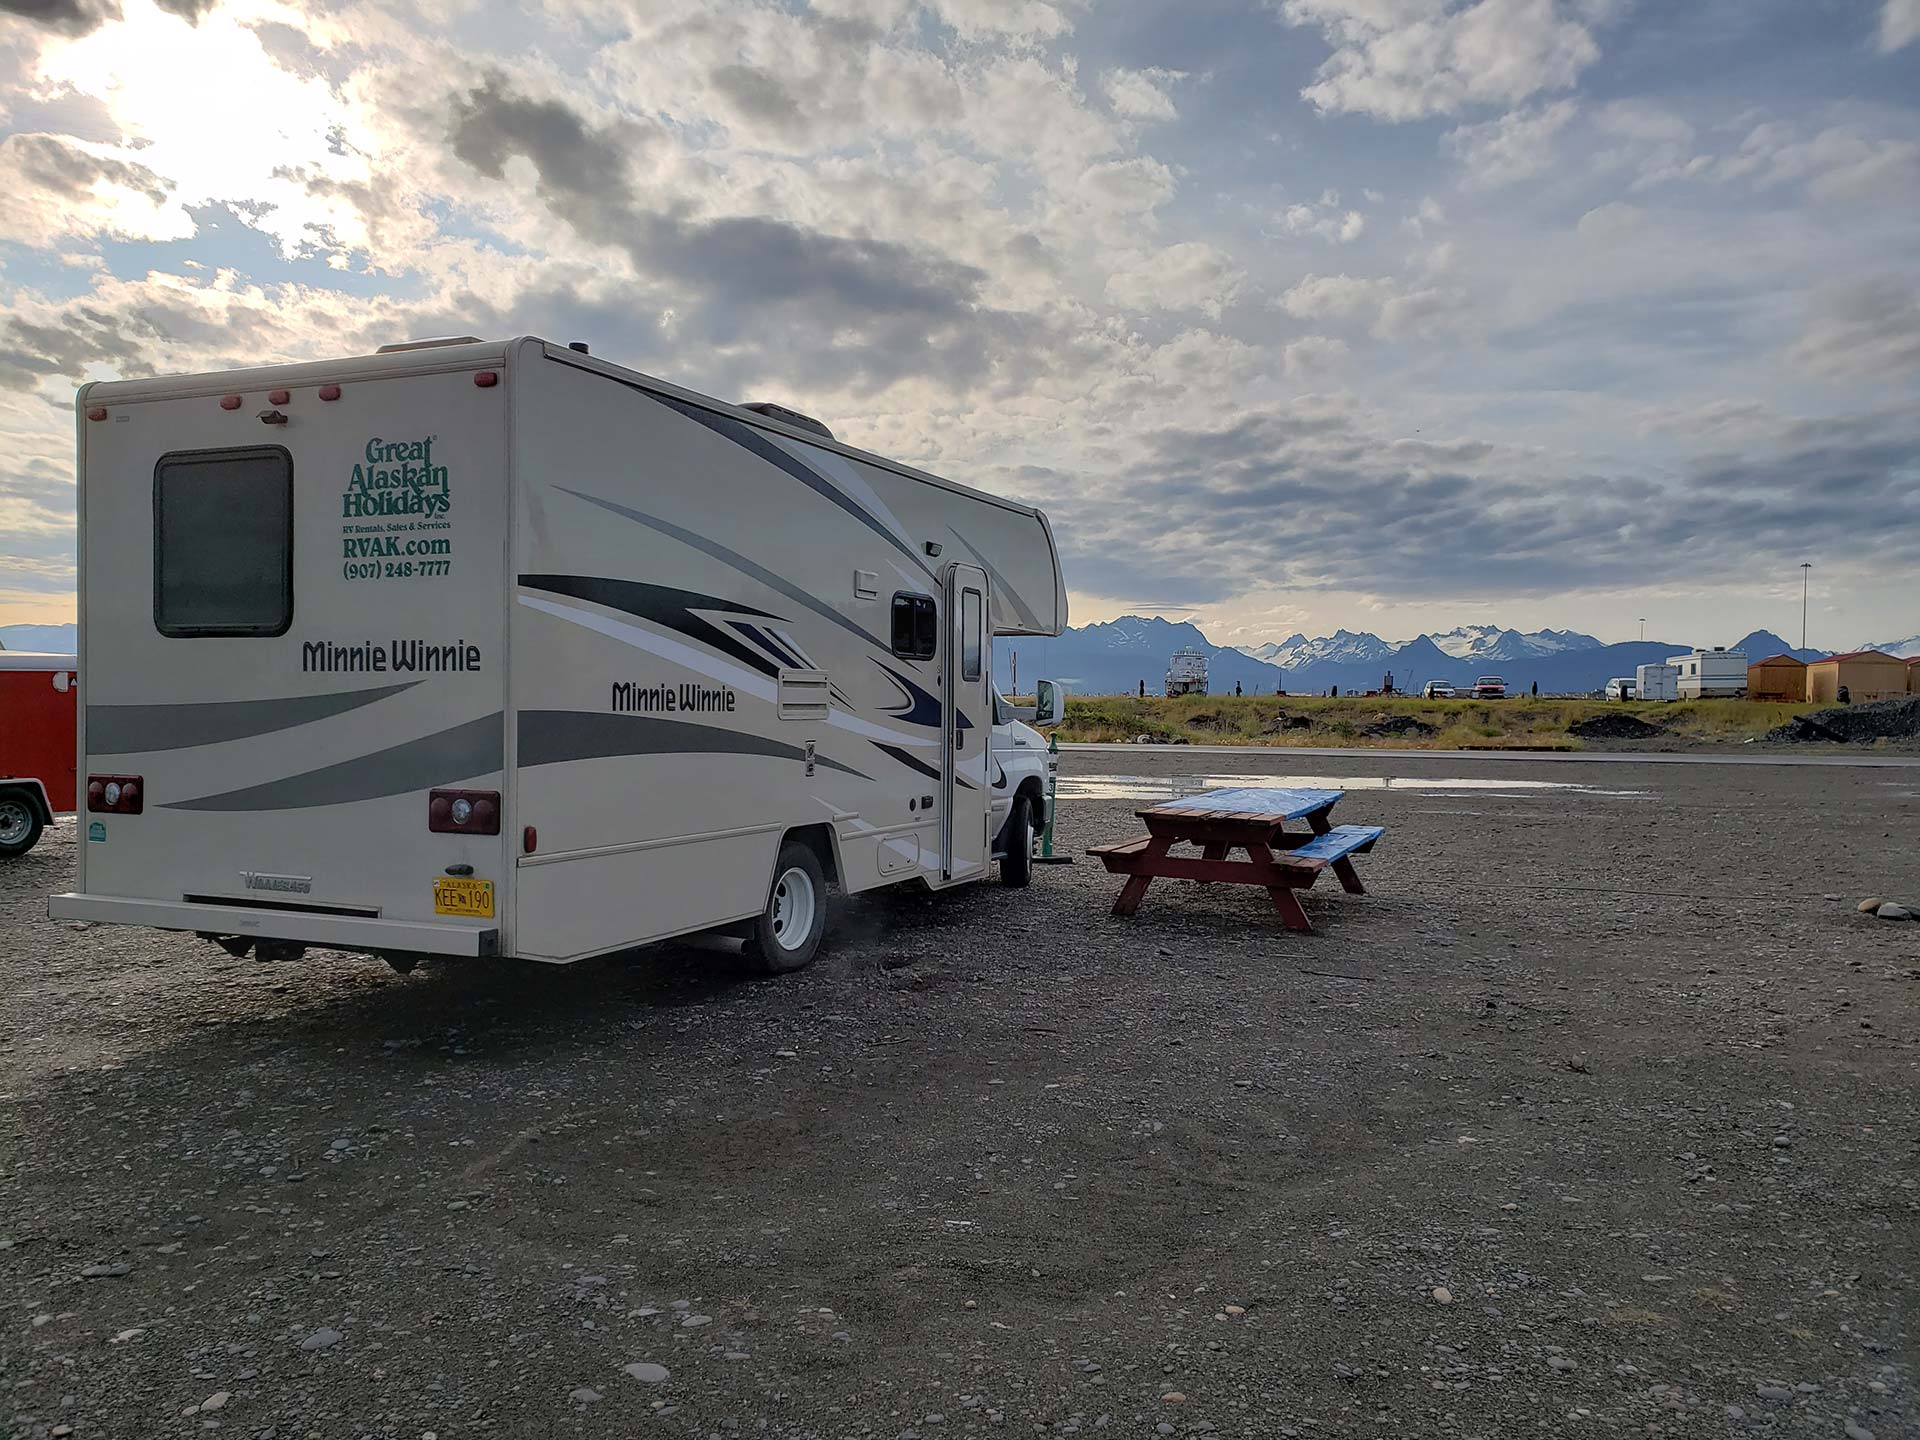 Camping at the Fishing Hole Campground in Homer by Susan Sasse